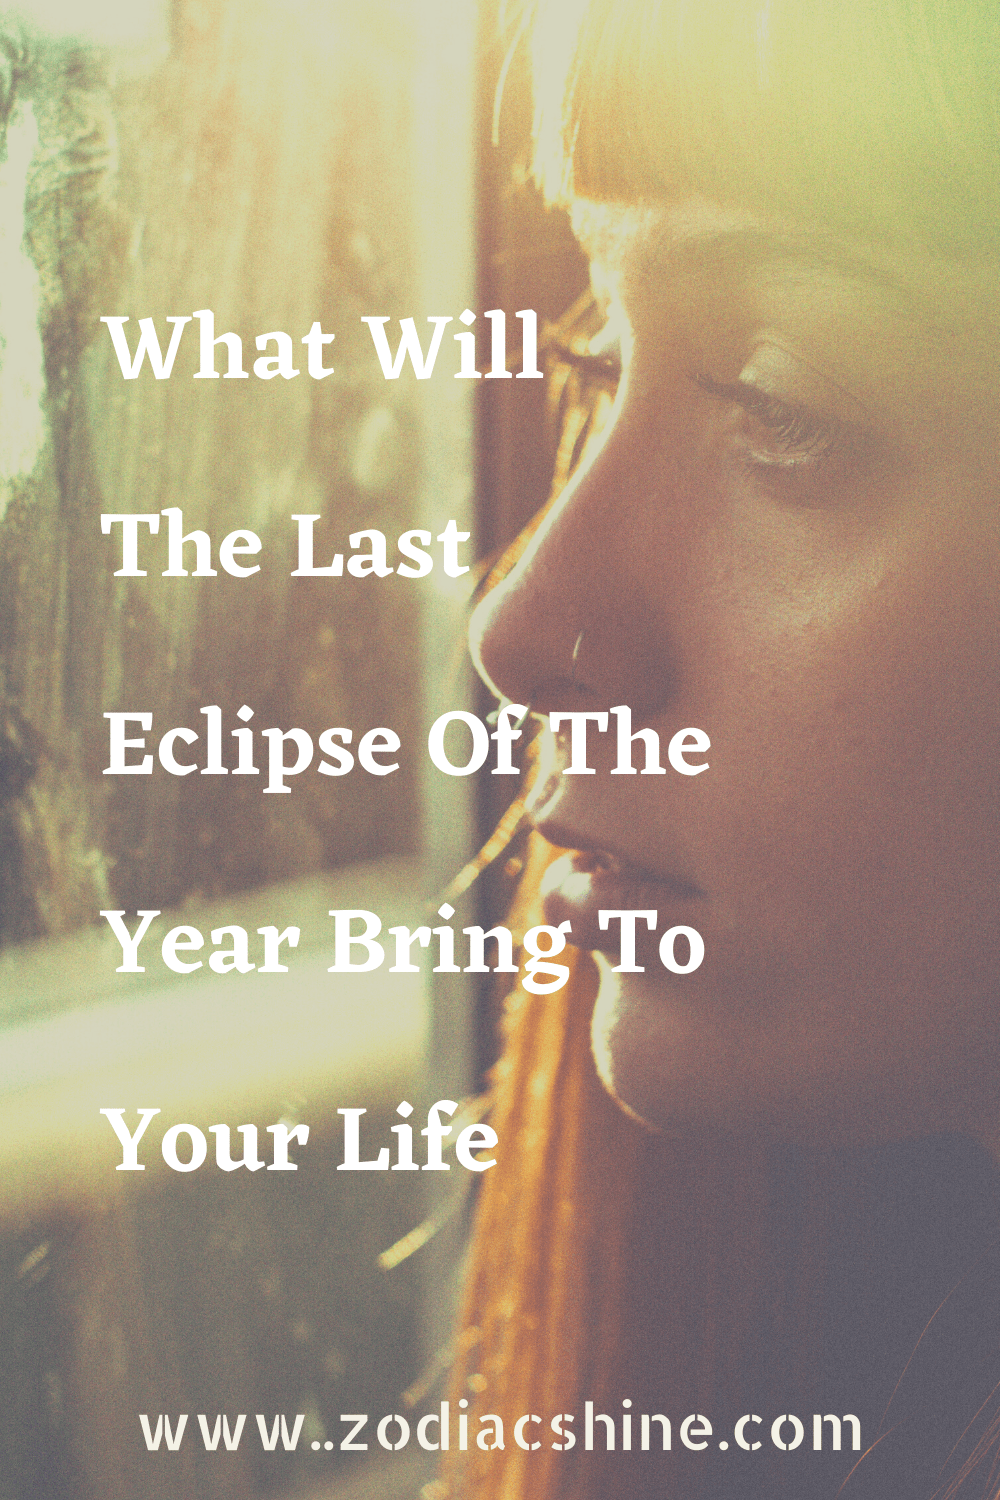 What Will The Last Eclipse Of The Year Bring To Your Life